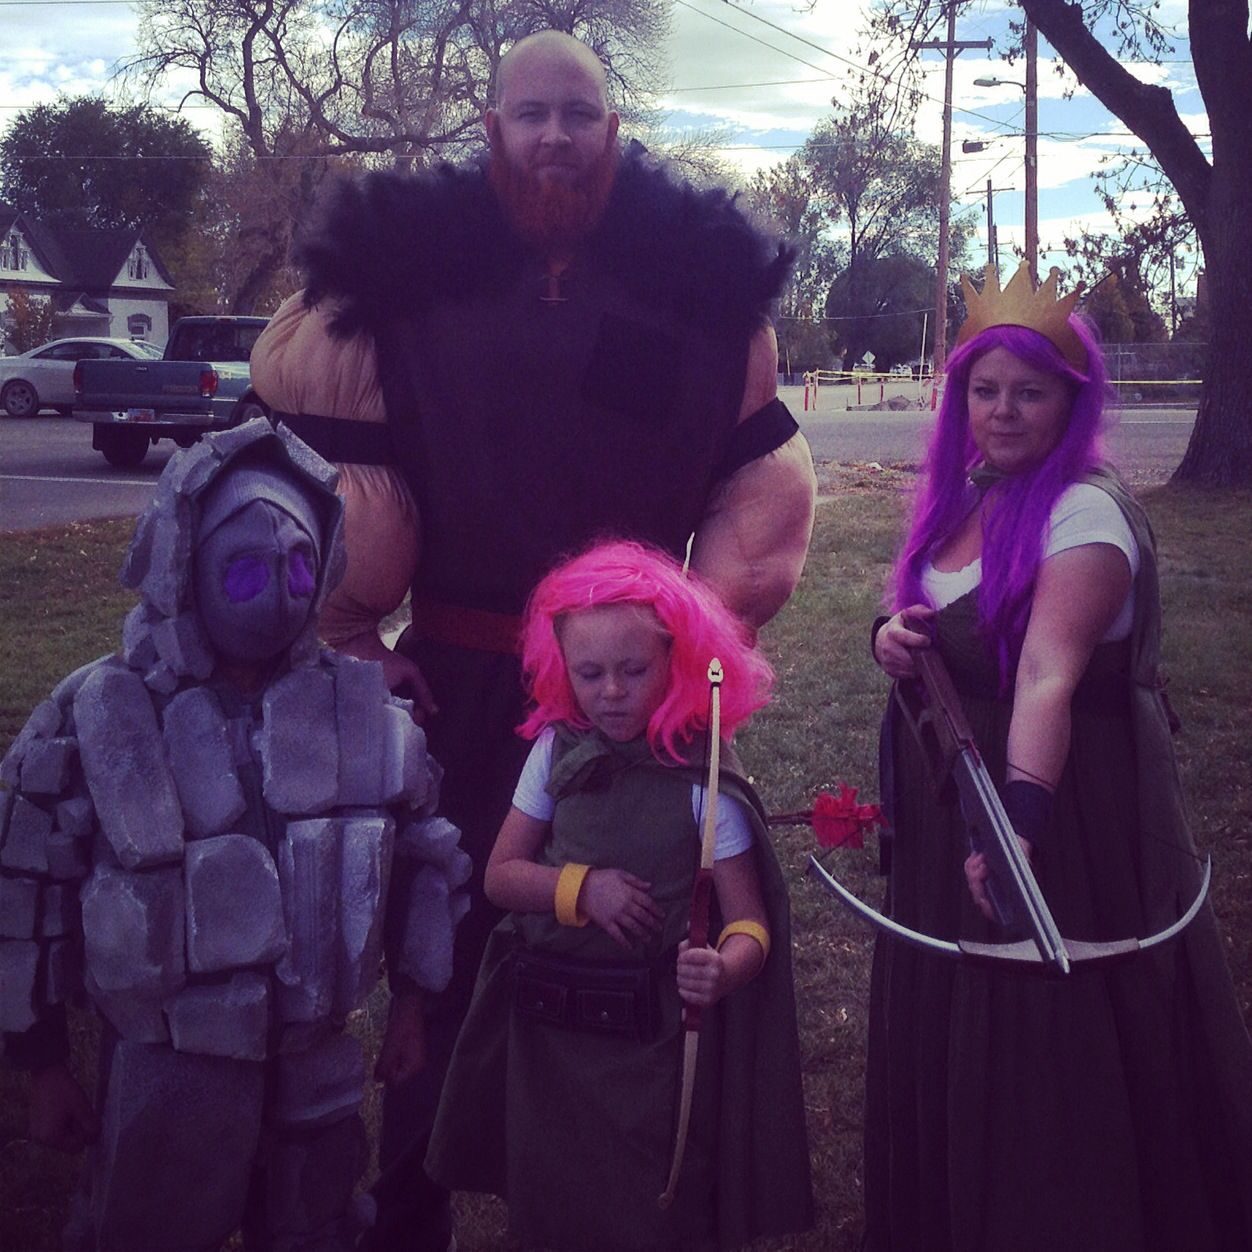 Our clash of clans Halloween costumes! Archer, archer queen, golem and a giant! Made them all myself this year!